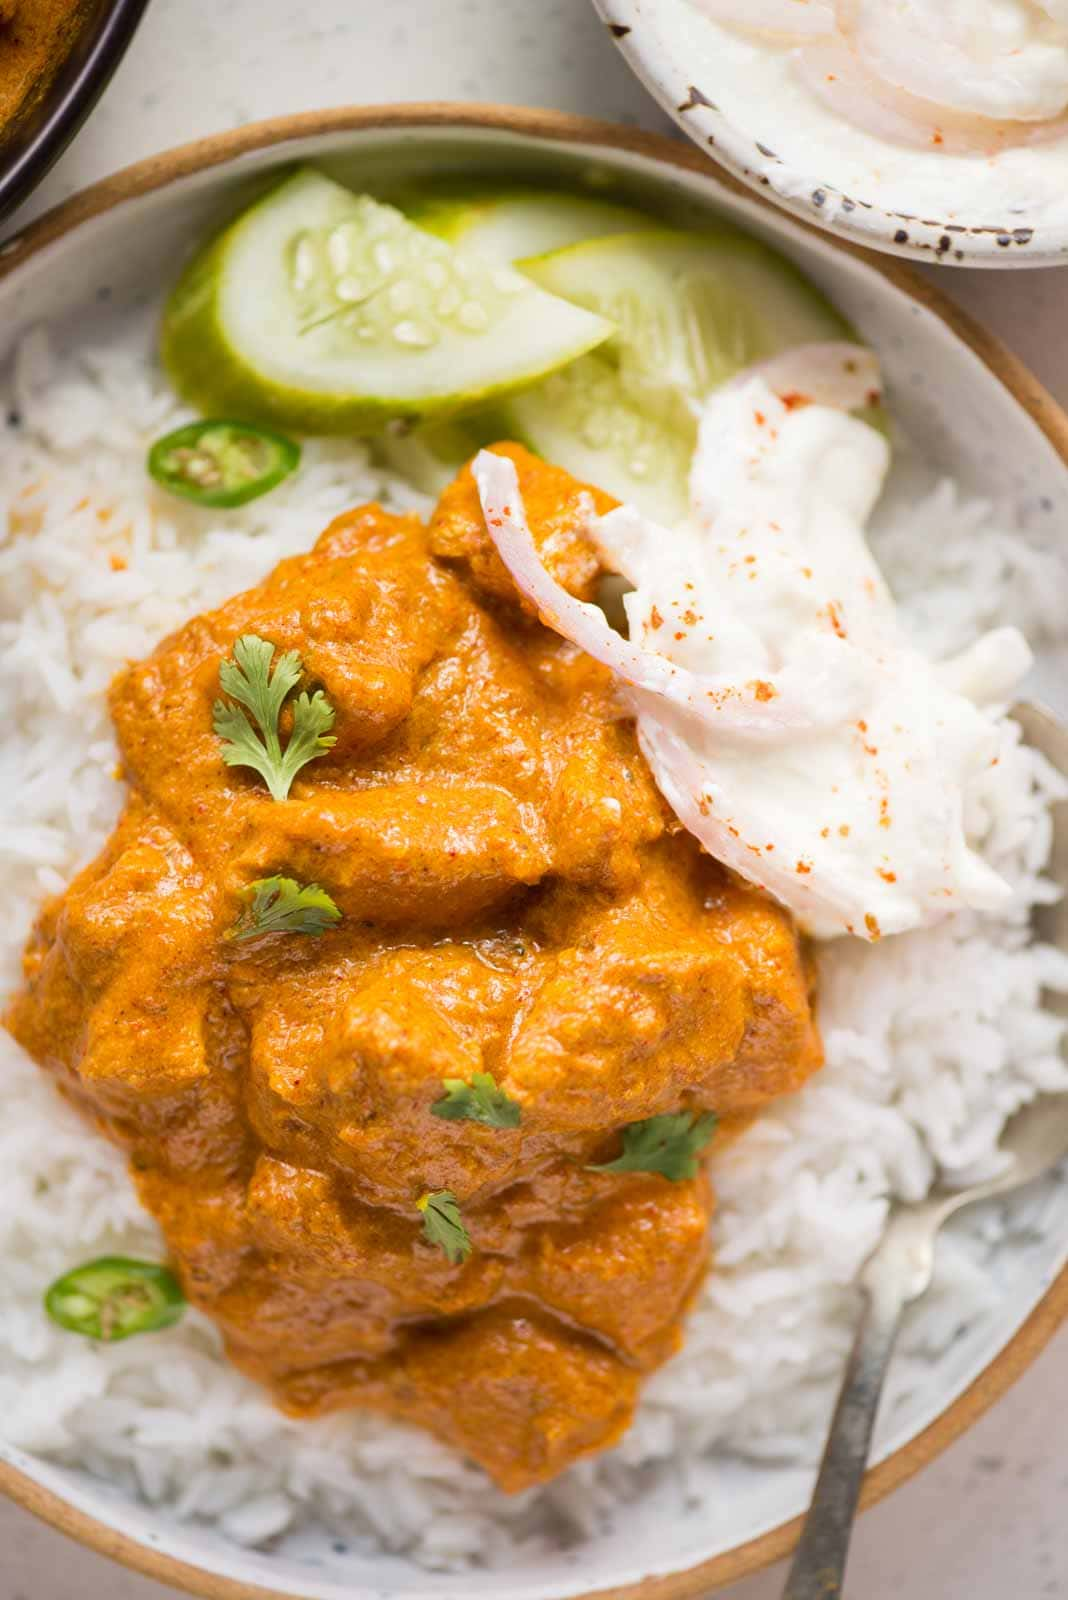 Coconut Chicken Curry, Chicken slow-cooked in sauteed onion, ginger garlic, spices, and coconut milk until juicy and tender. Perfect to pair with rice or roti/naan.